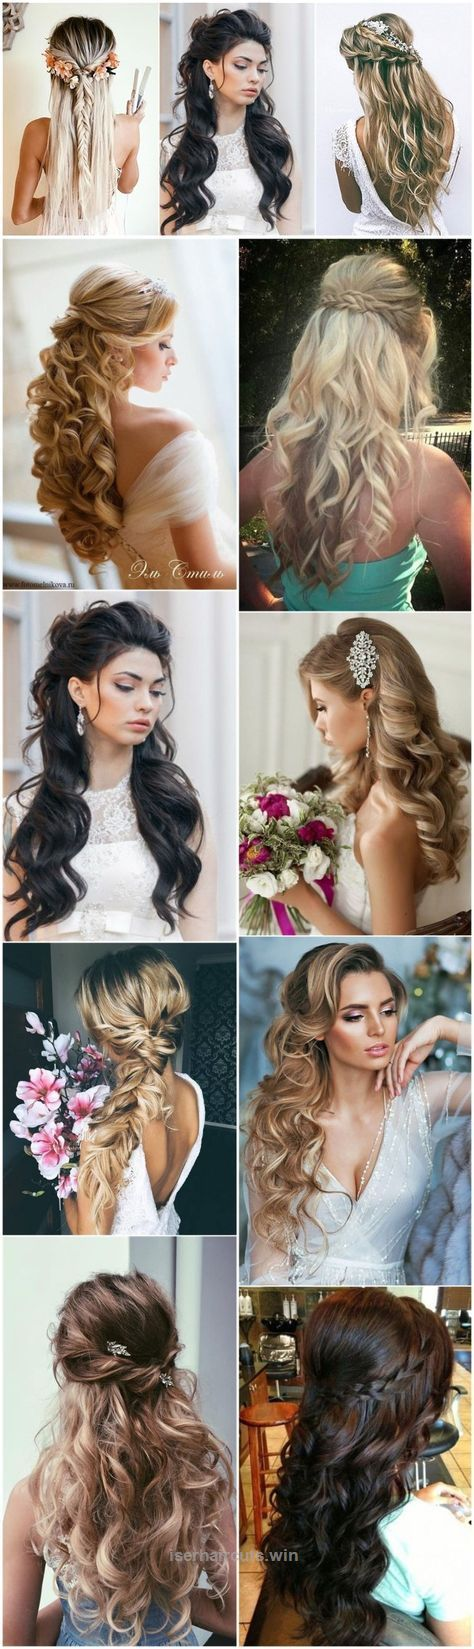 Marvelous Wedding Hairstyles » 18 Creative and Unique Wedding Hairstyles for Long Hair » ❤️ See more: www.weddinginclud…  The post  Wedding Hairstyles » 18 Creative and Unique Wedding H ..